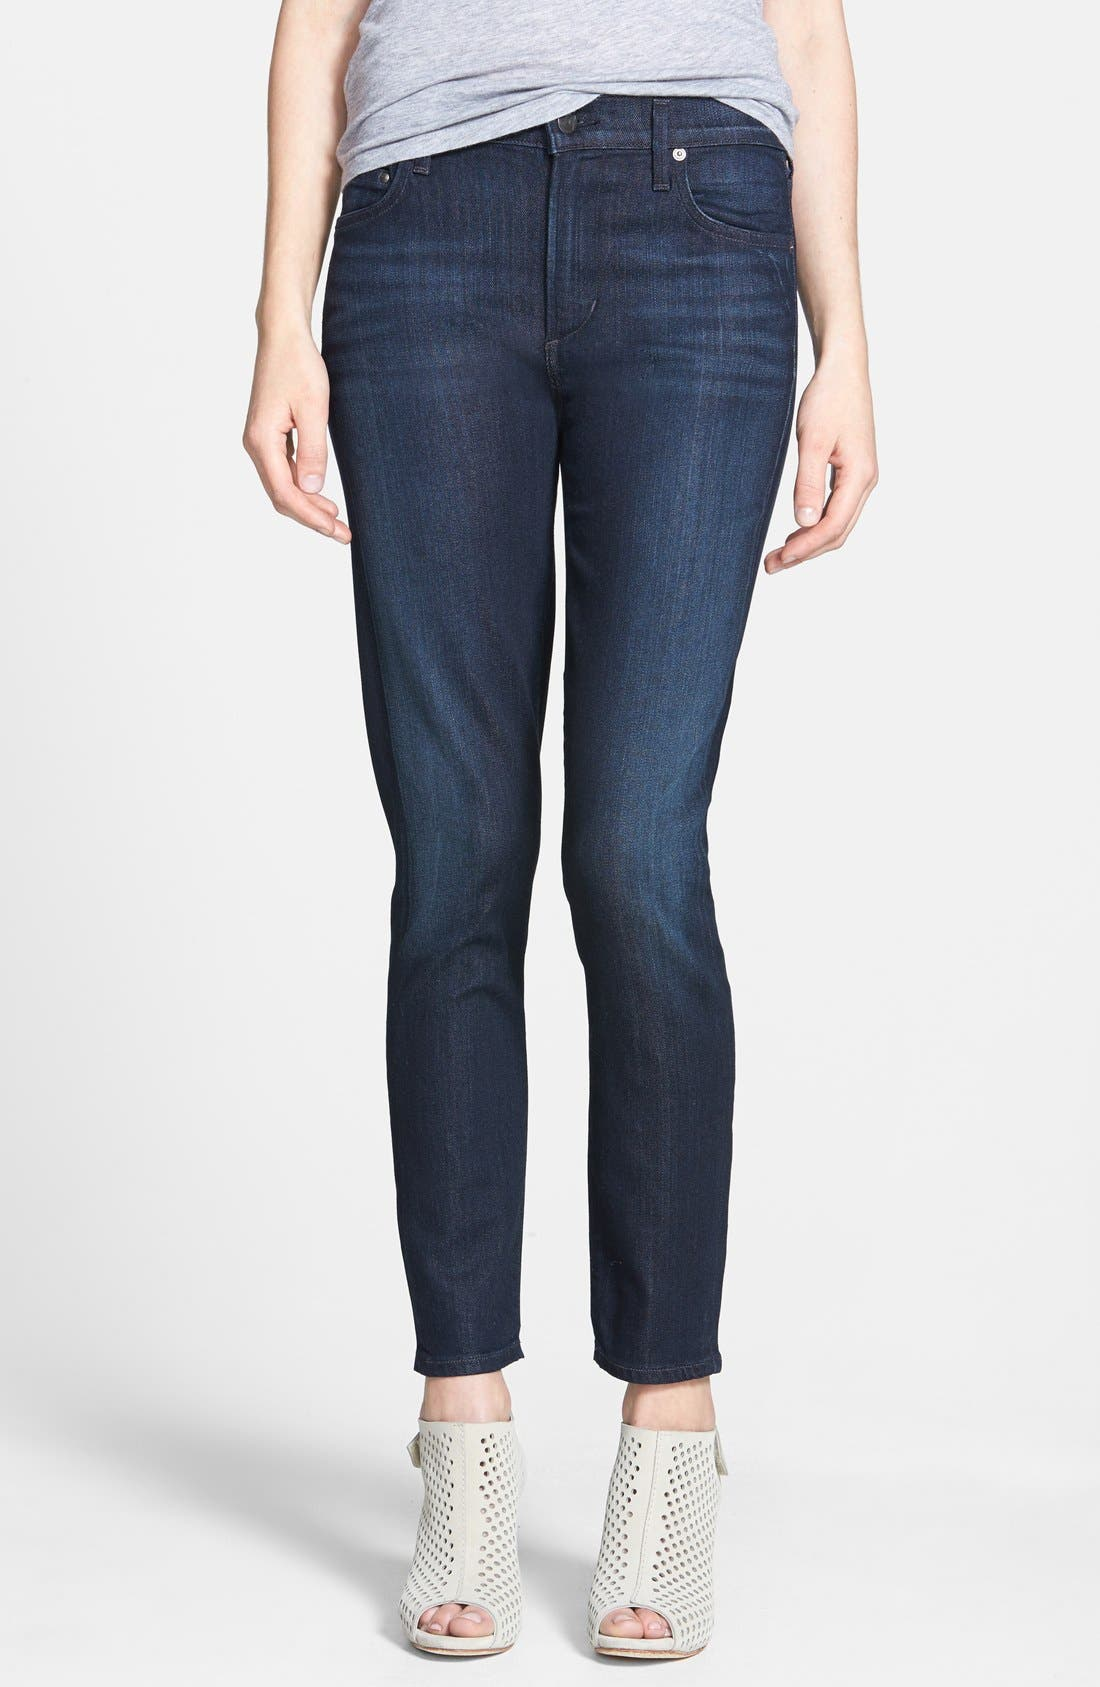 Main Image - Citizens of Humanity 'Rocket' Crop Skinny Jeans (Space)